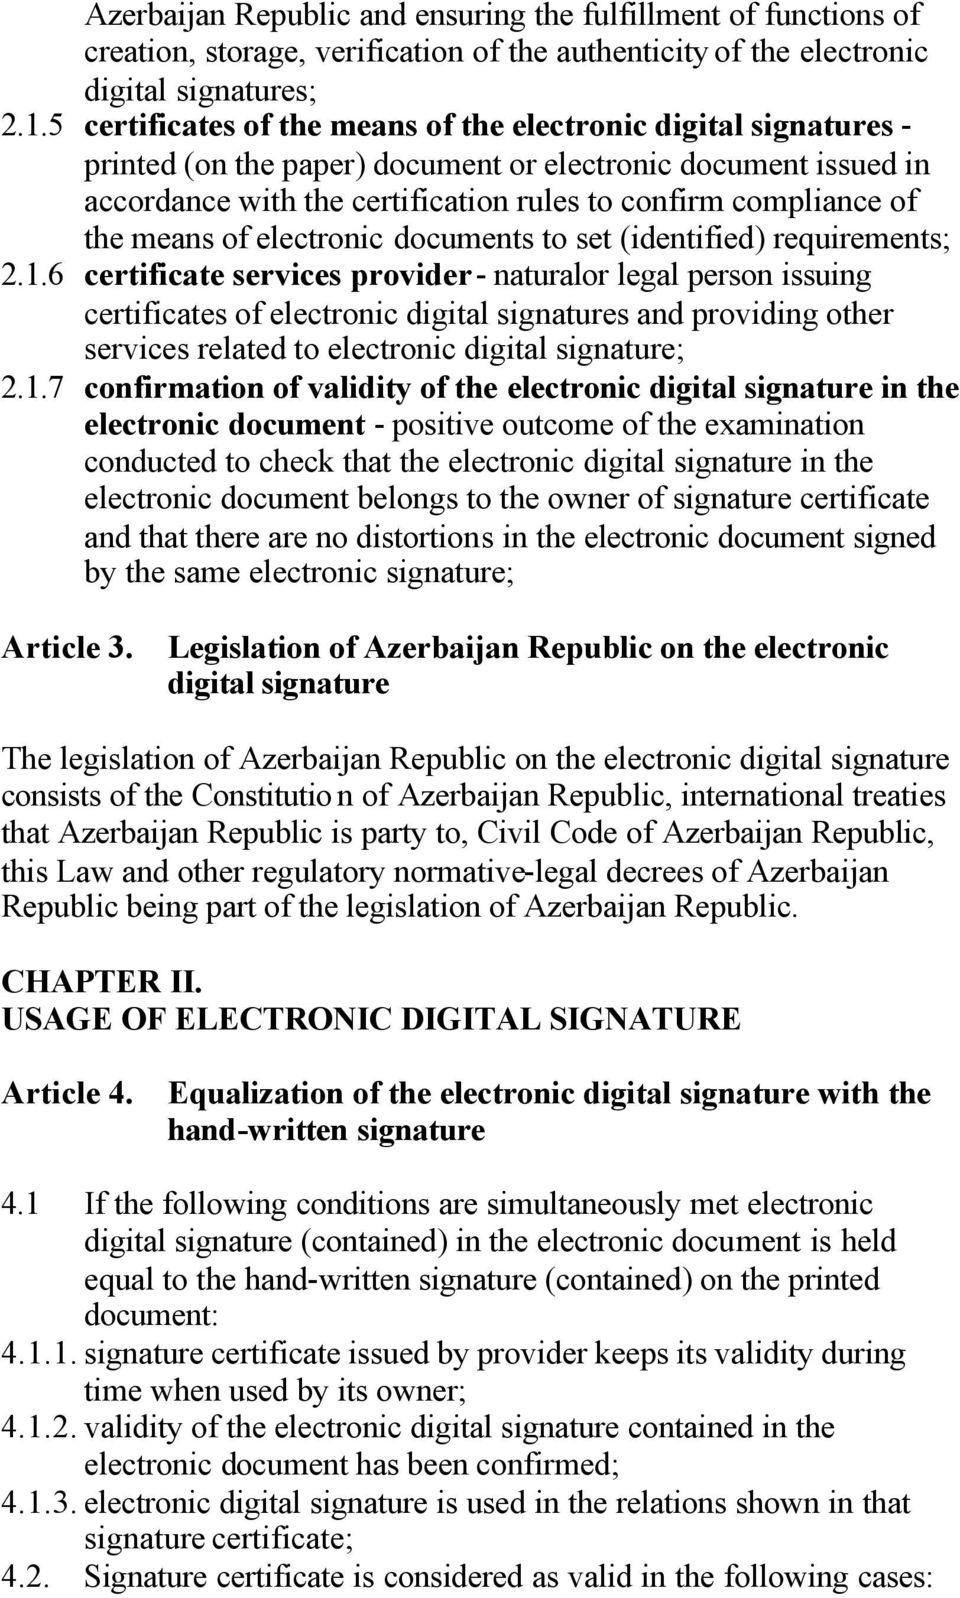 the means of electronic documents to set (identified) requirements; 2.1.